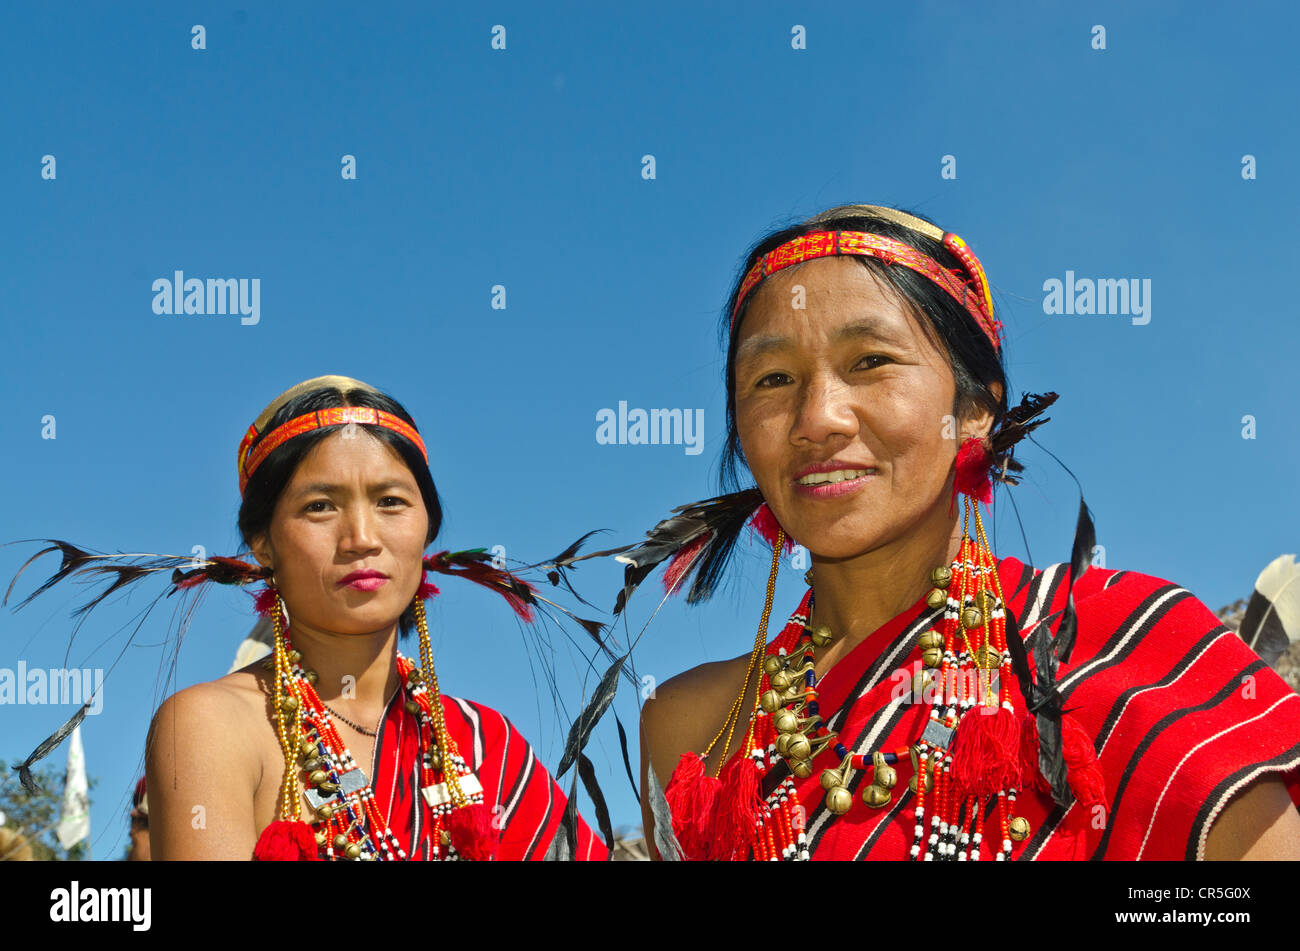 Women of the Phom tribe at the annual Hornbill Festival, Kohima, Nagaland, India, Asia Stock Photo